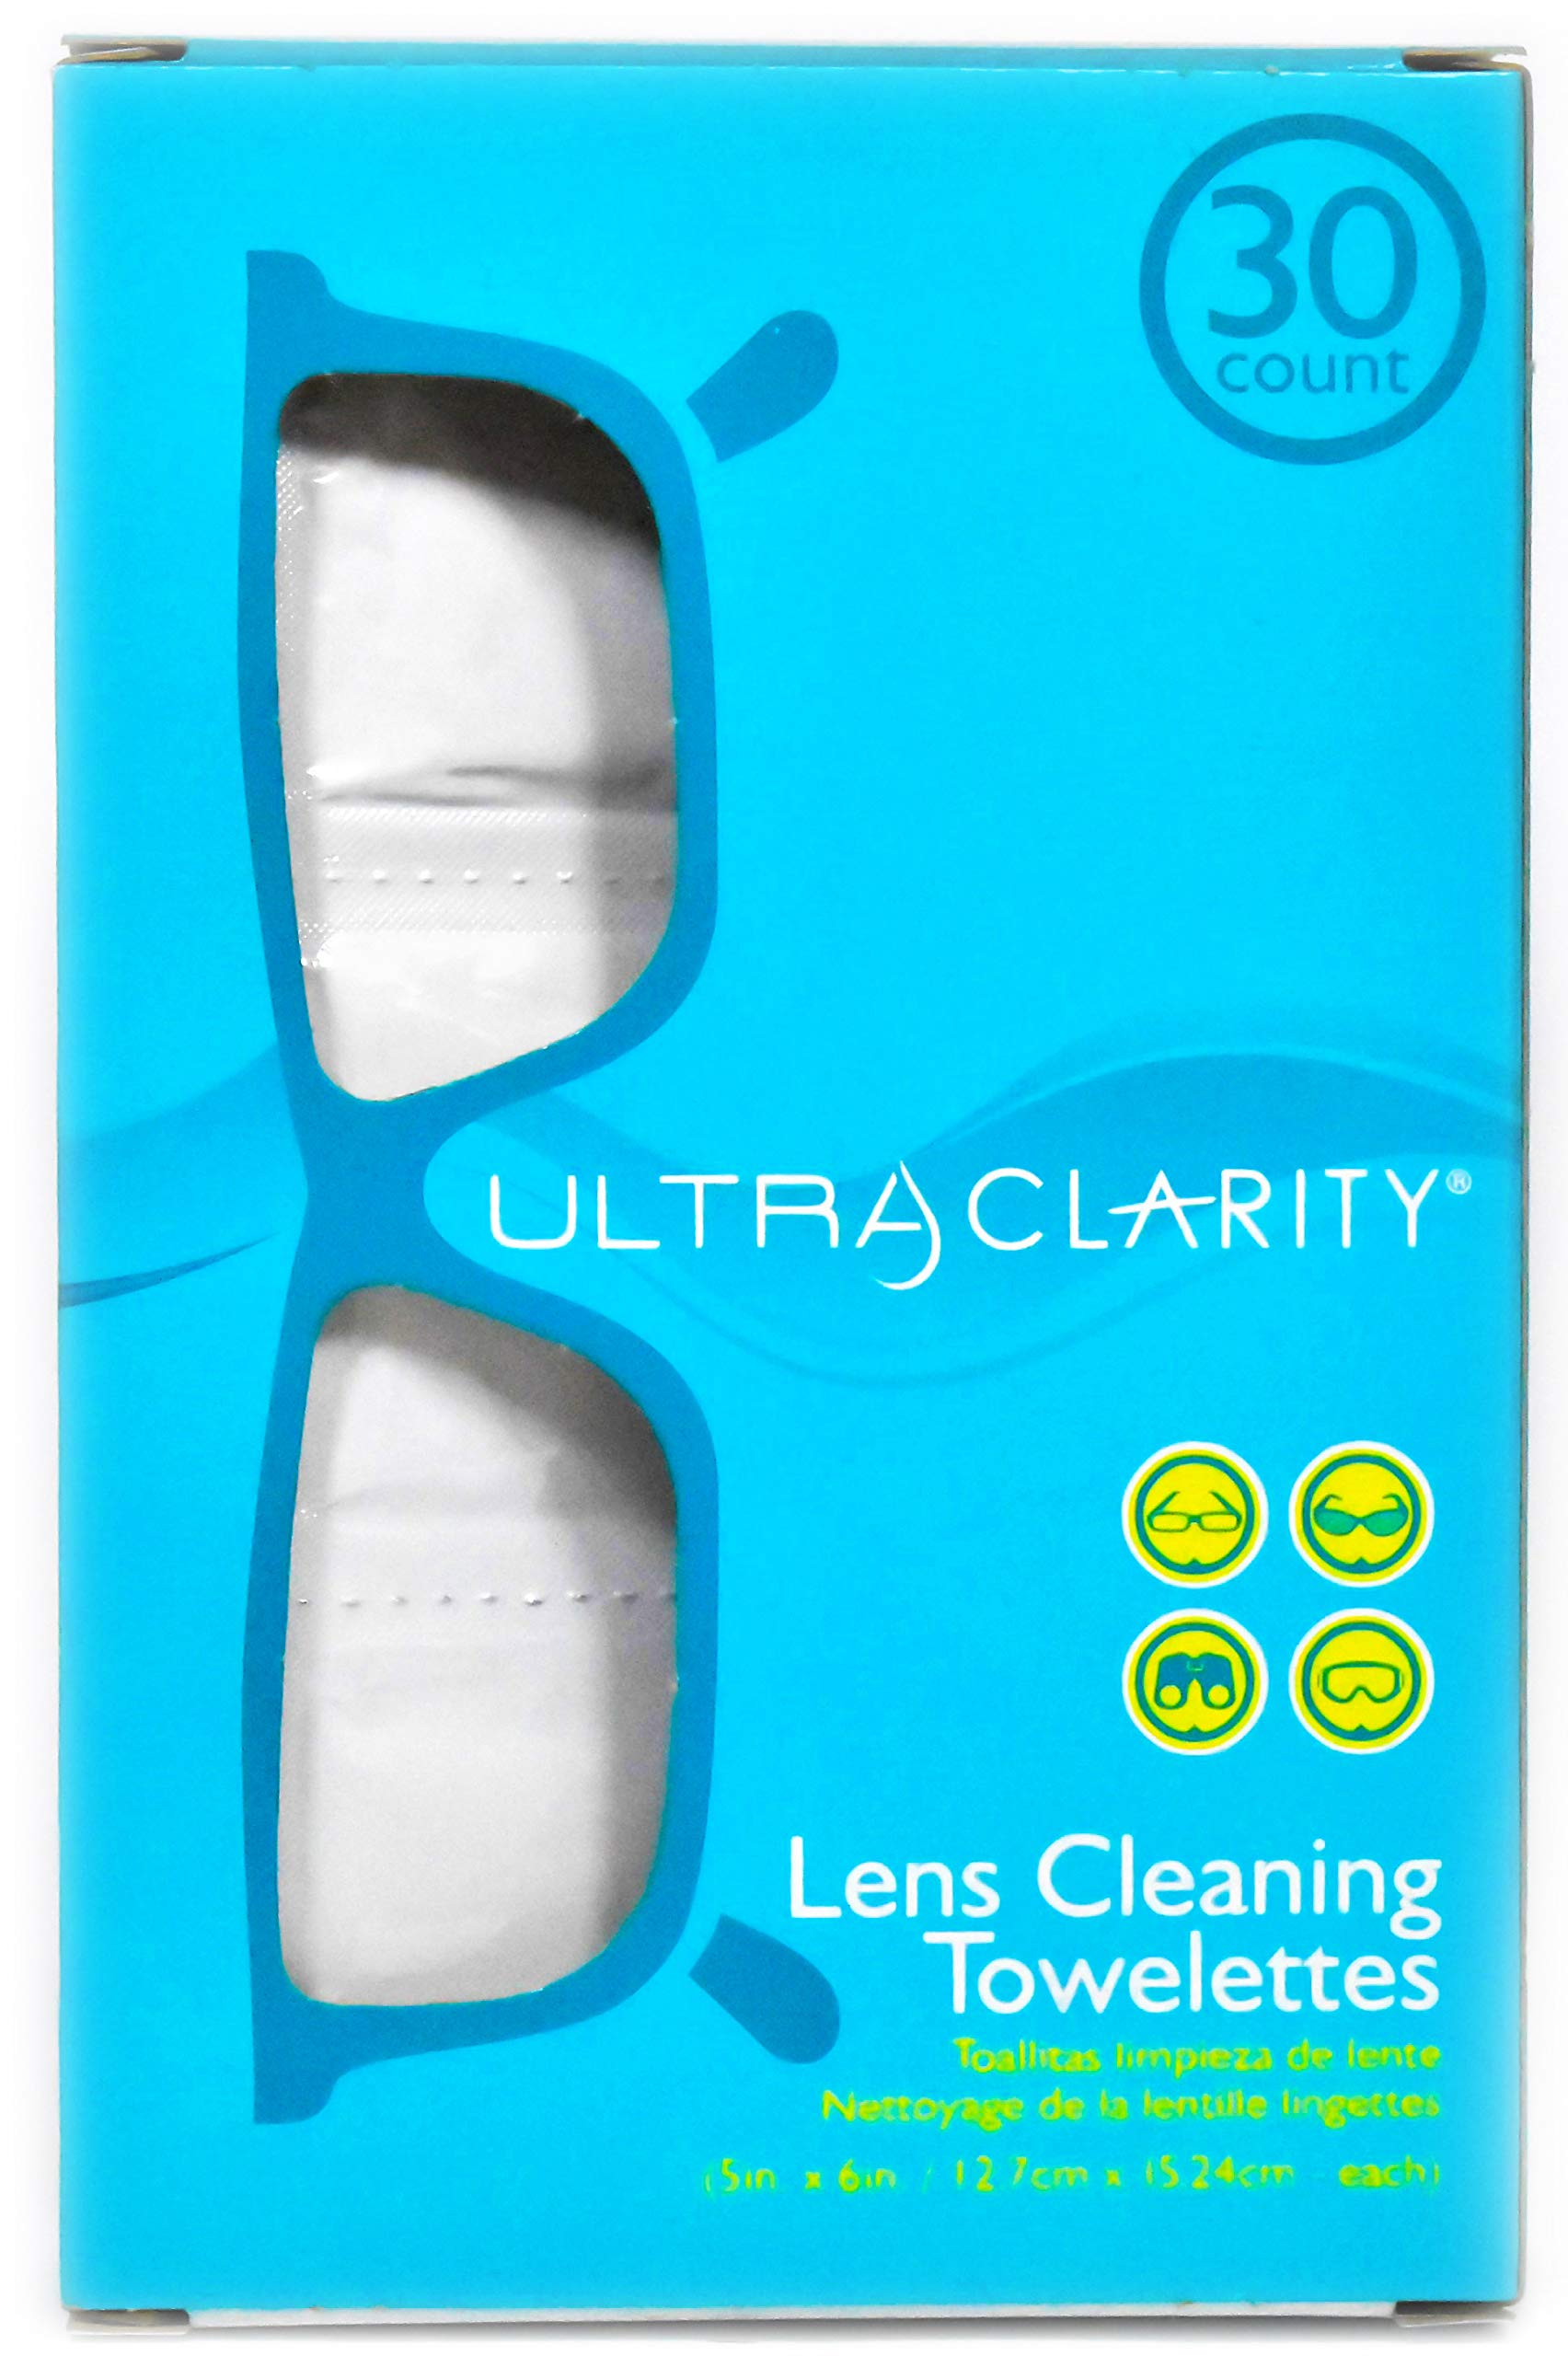 Ultra Clarity Eyeglass Cleaner Wipes - Lens & Screen Cleaning Moist Towelettes, 30 Count